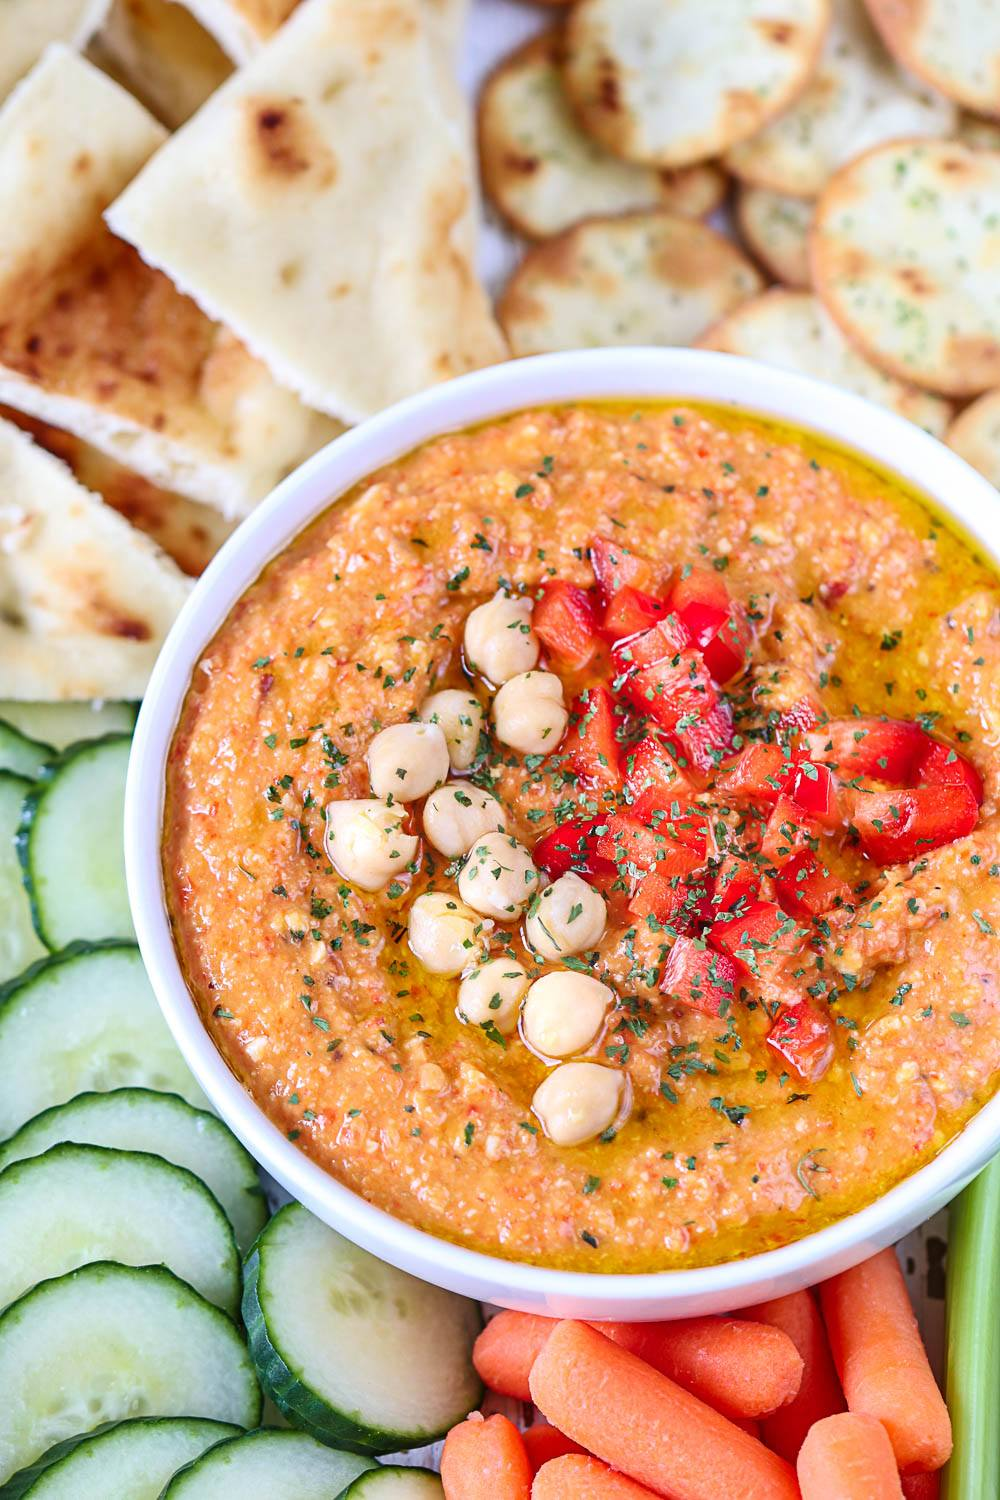 Roasted Red Bell Pepper And Chickpea Hummus Recipe - Ruchiskitchen